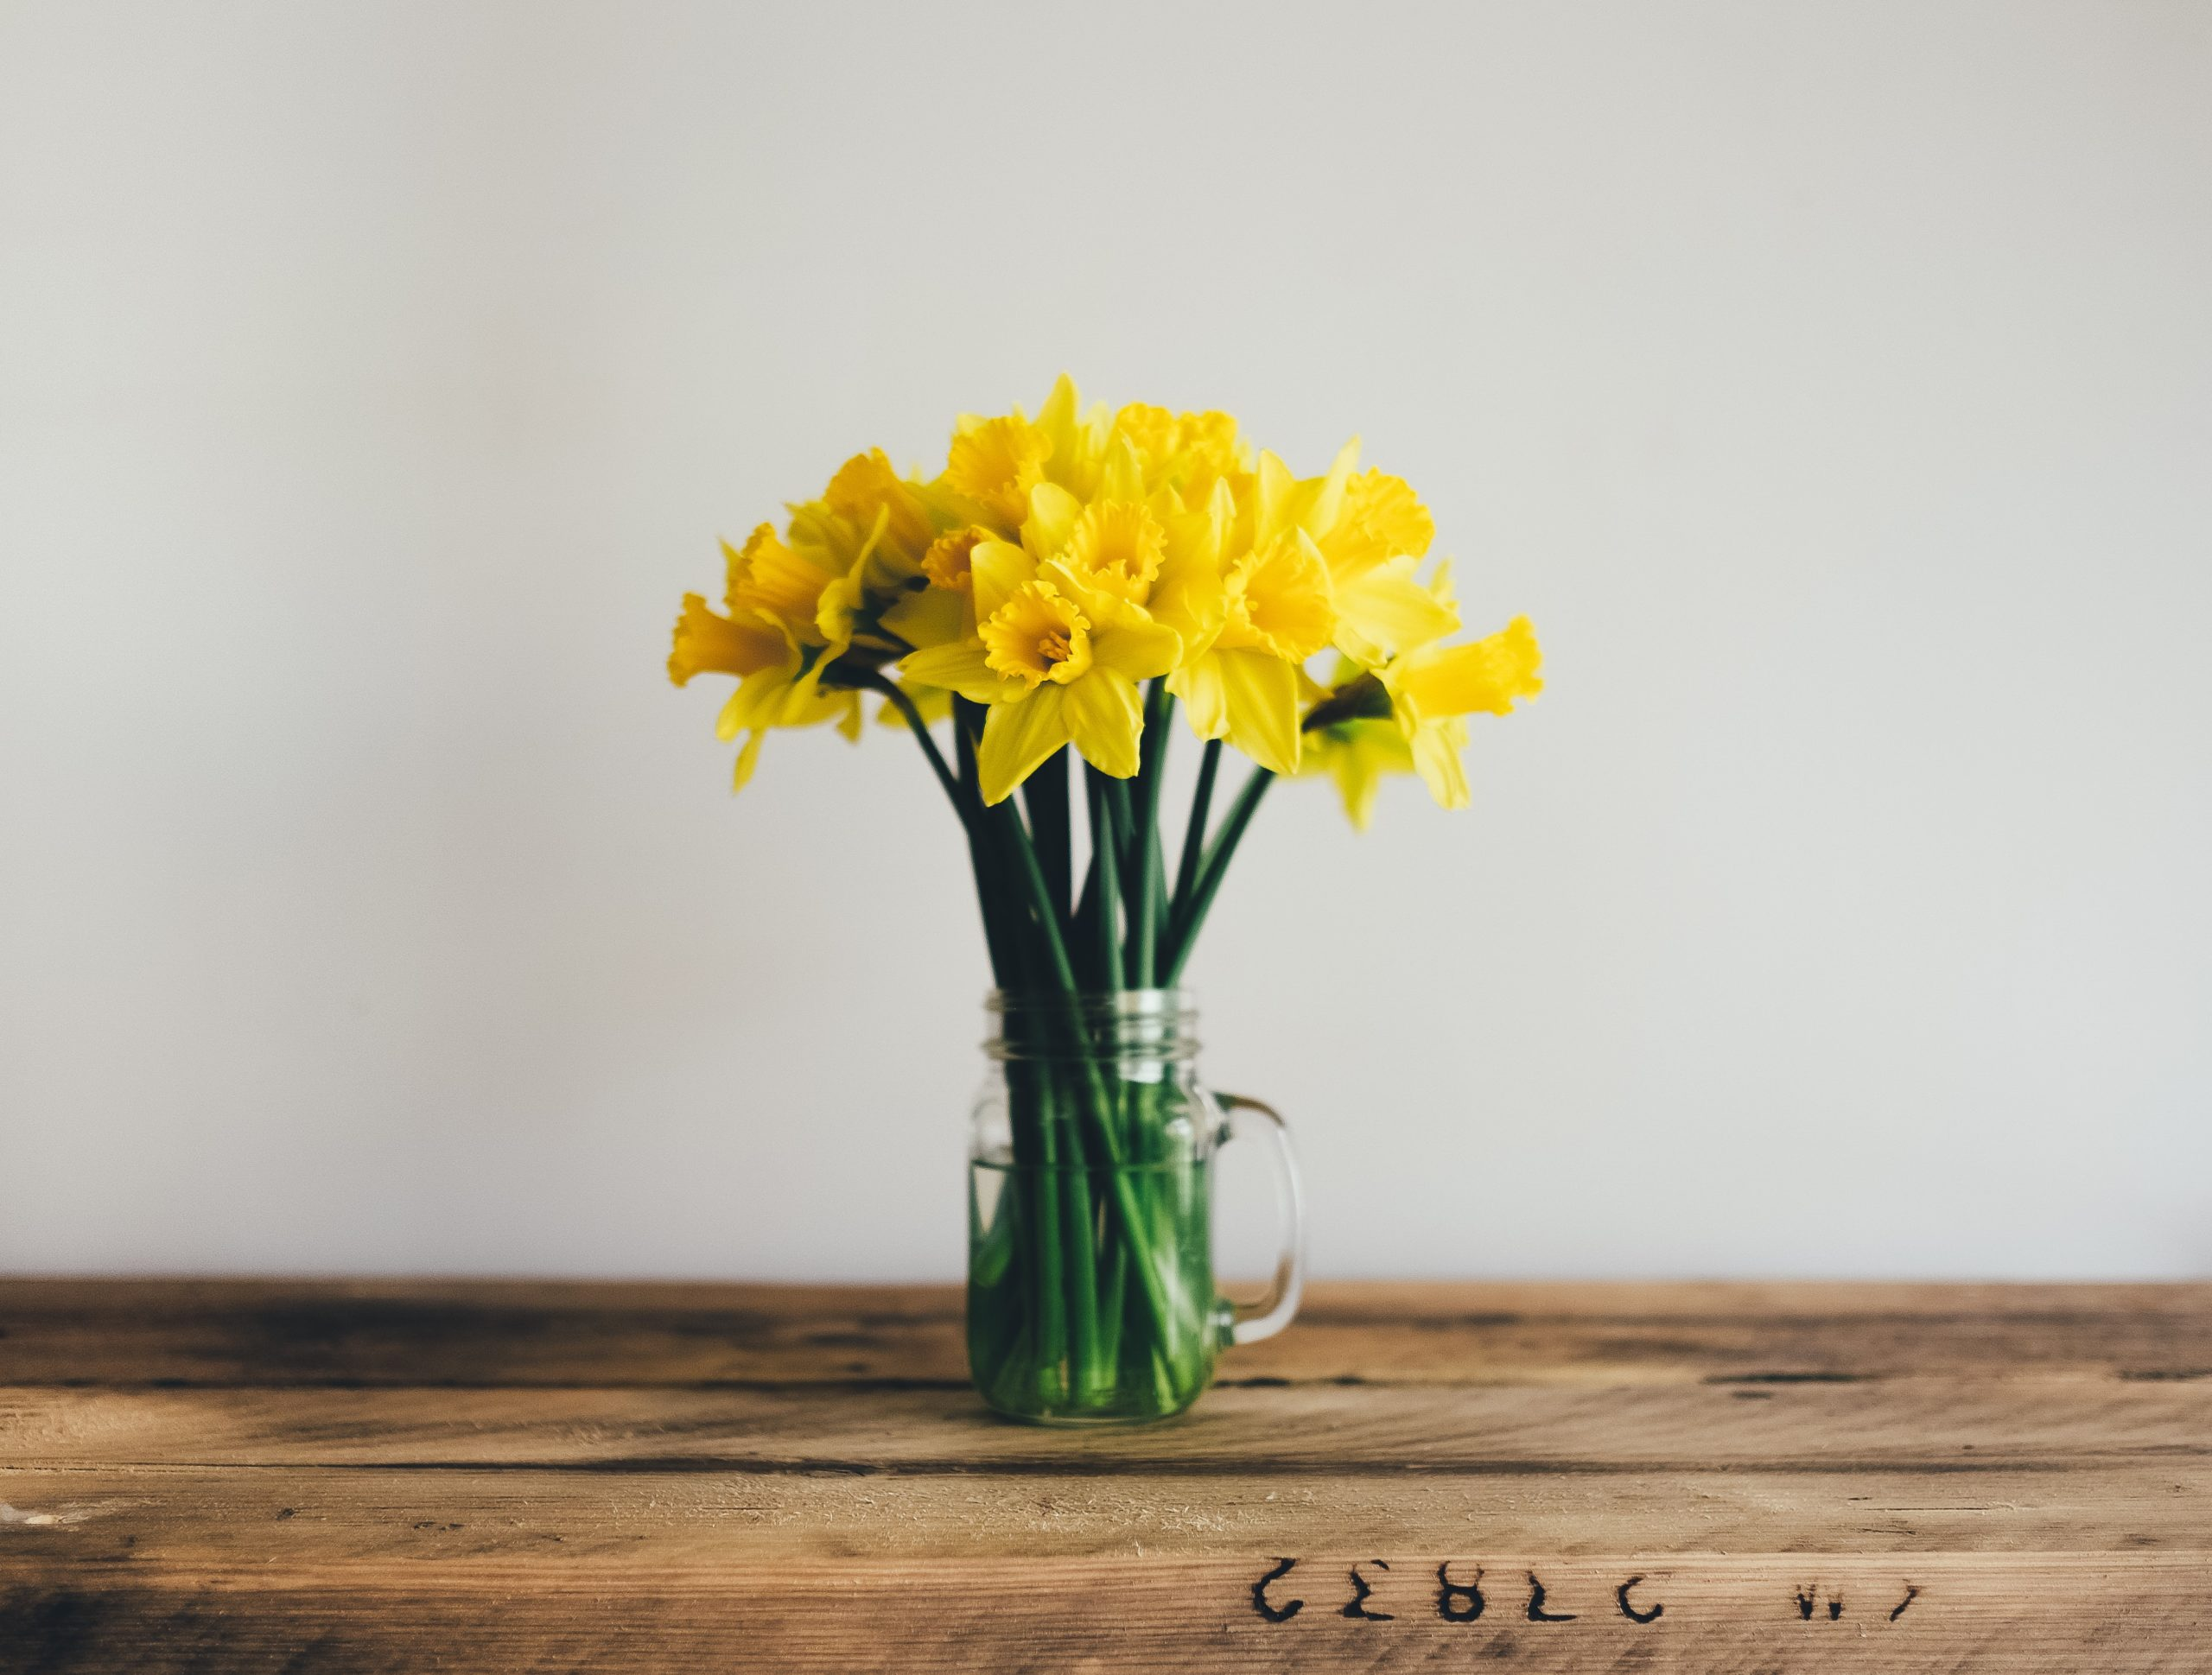 Spring flowers on table